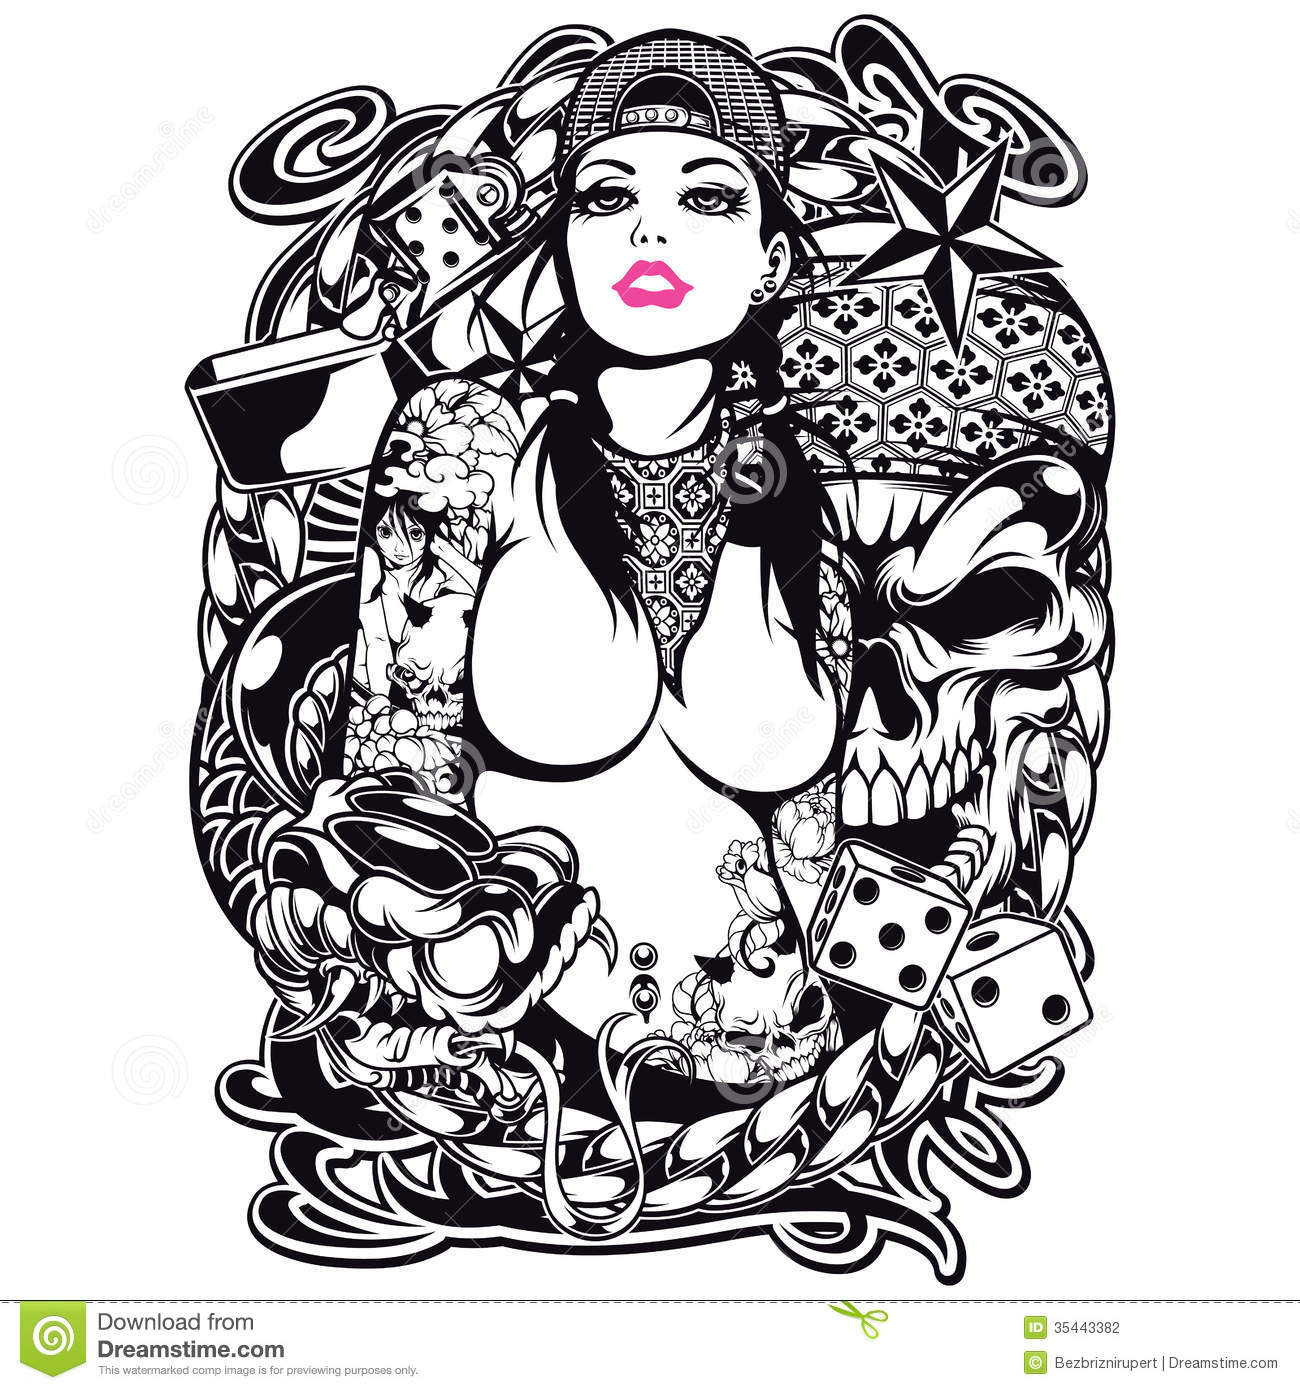 Design t shirt girl - Tattoo Girl Shirt Design